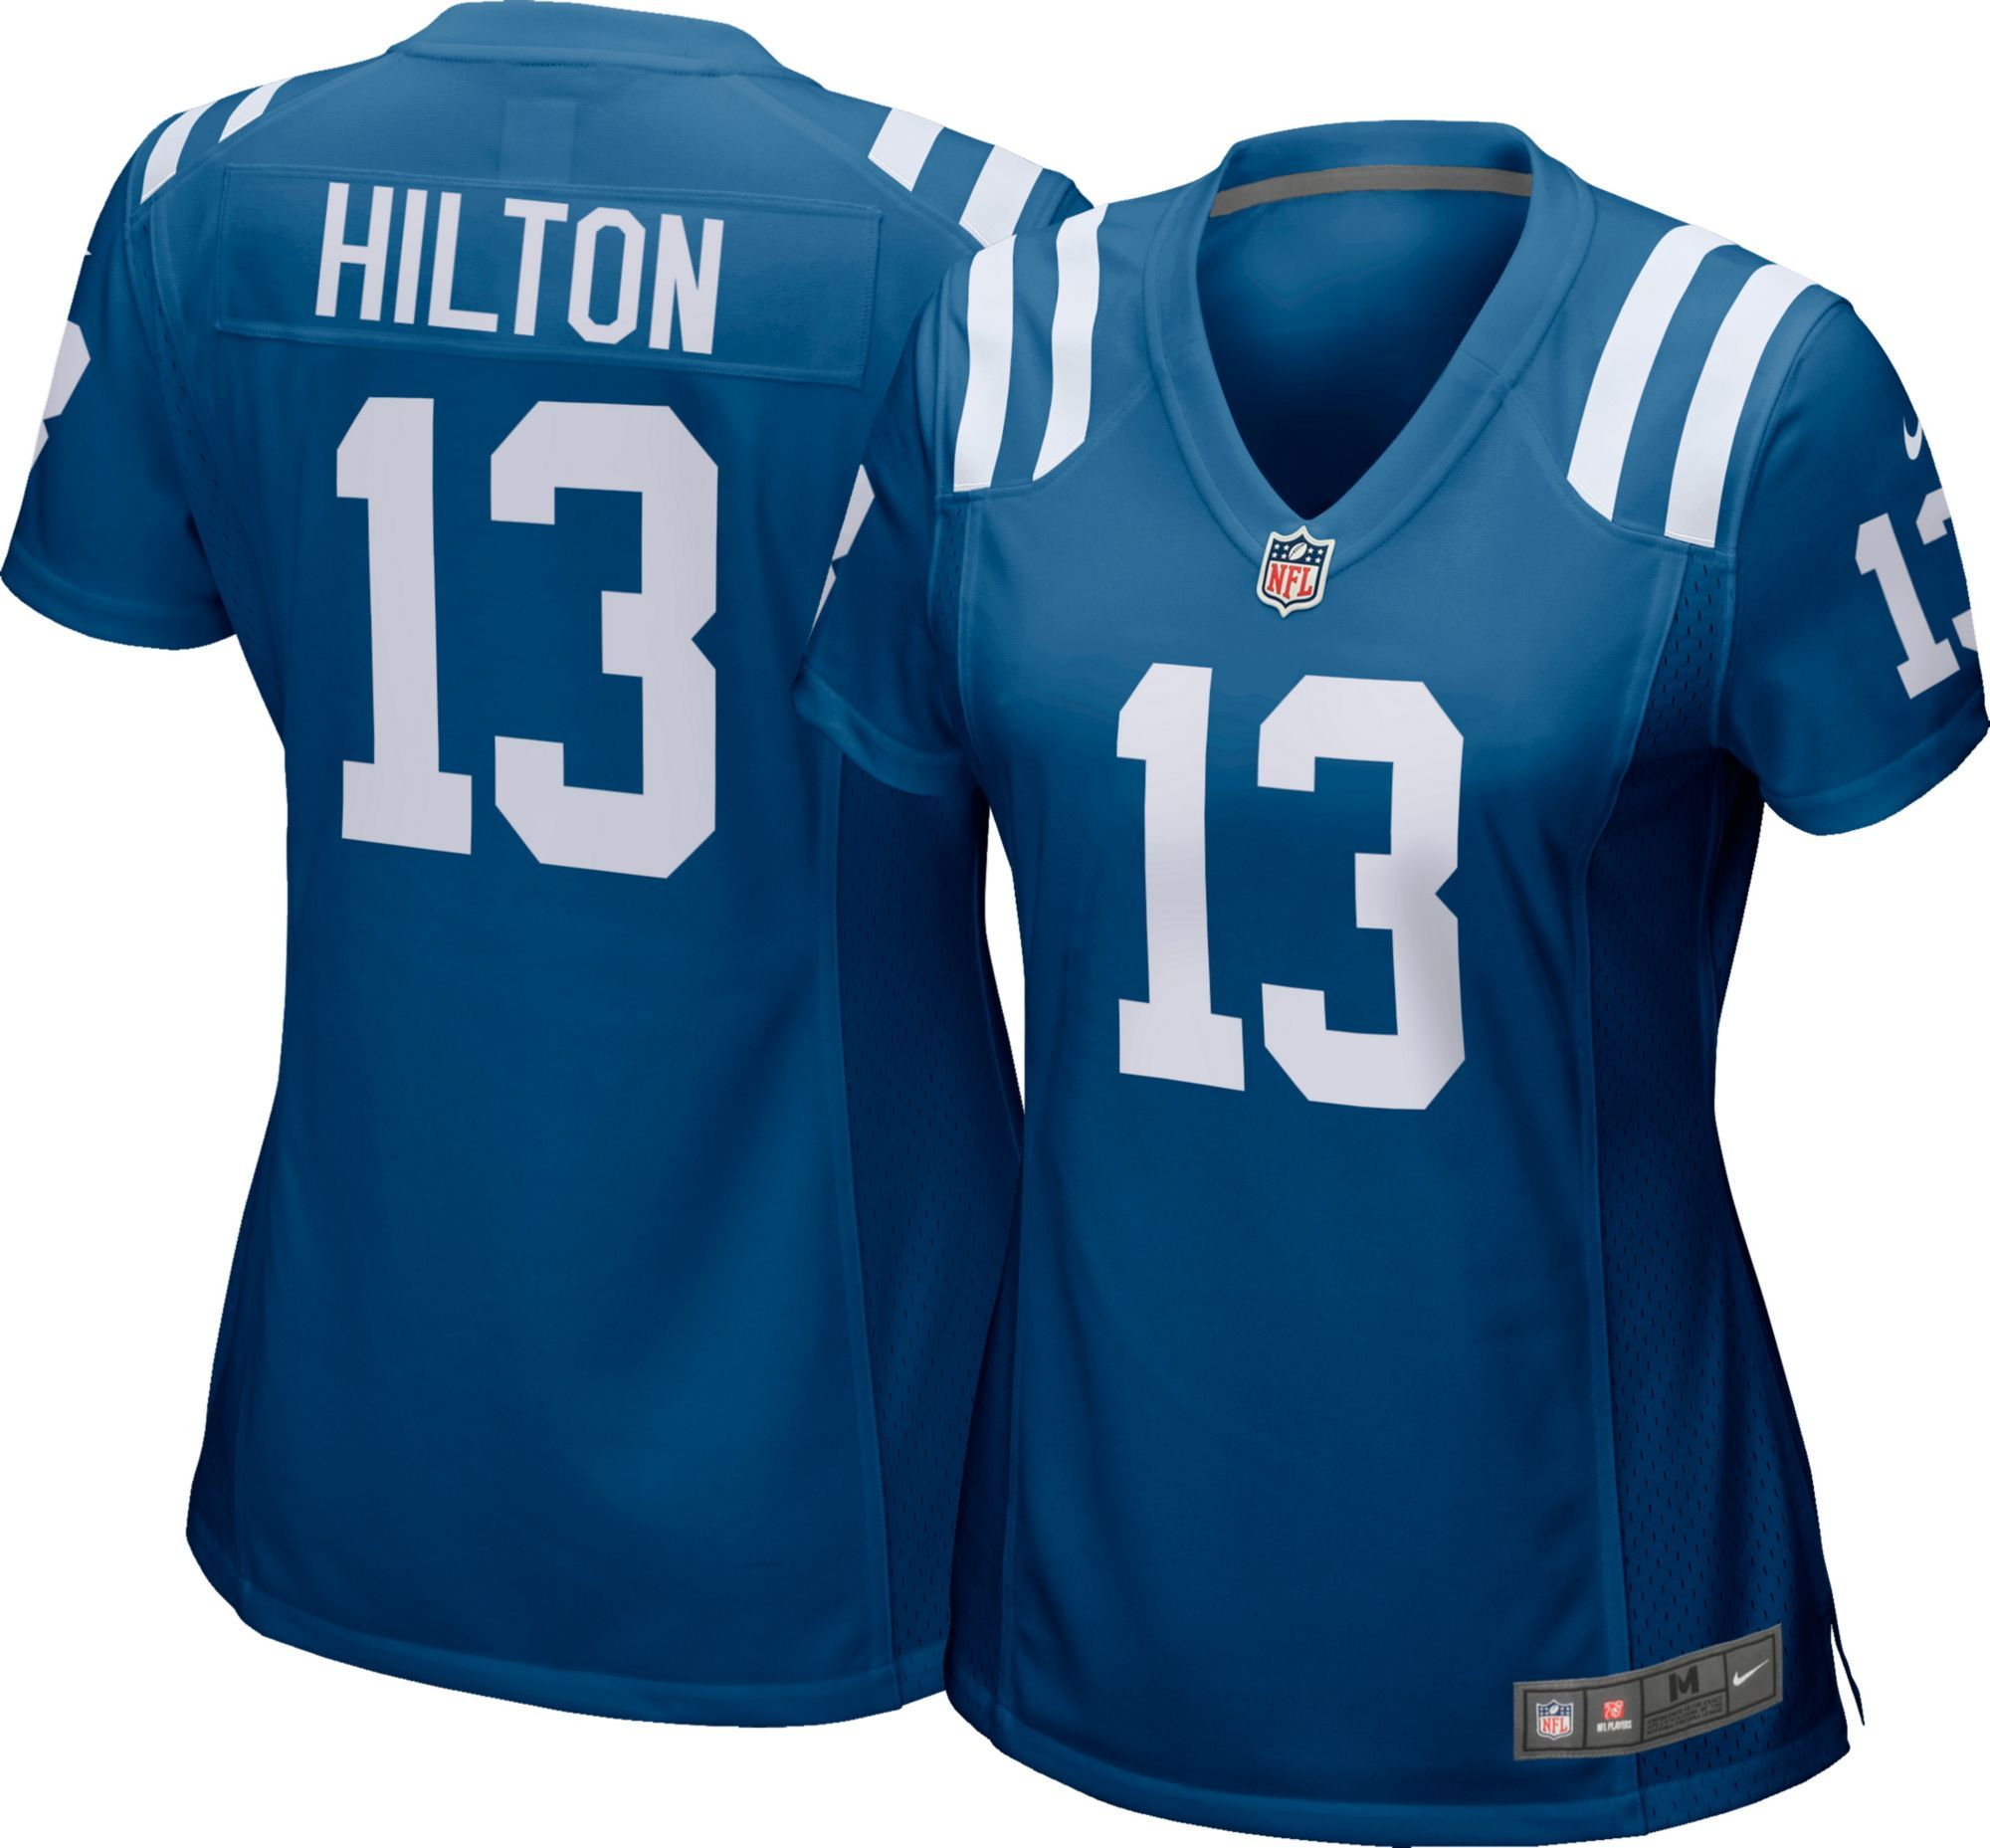 Home Game Jersey Indianapolis Colts